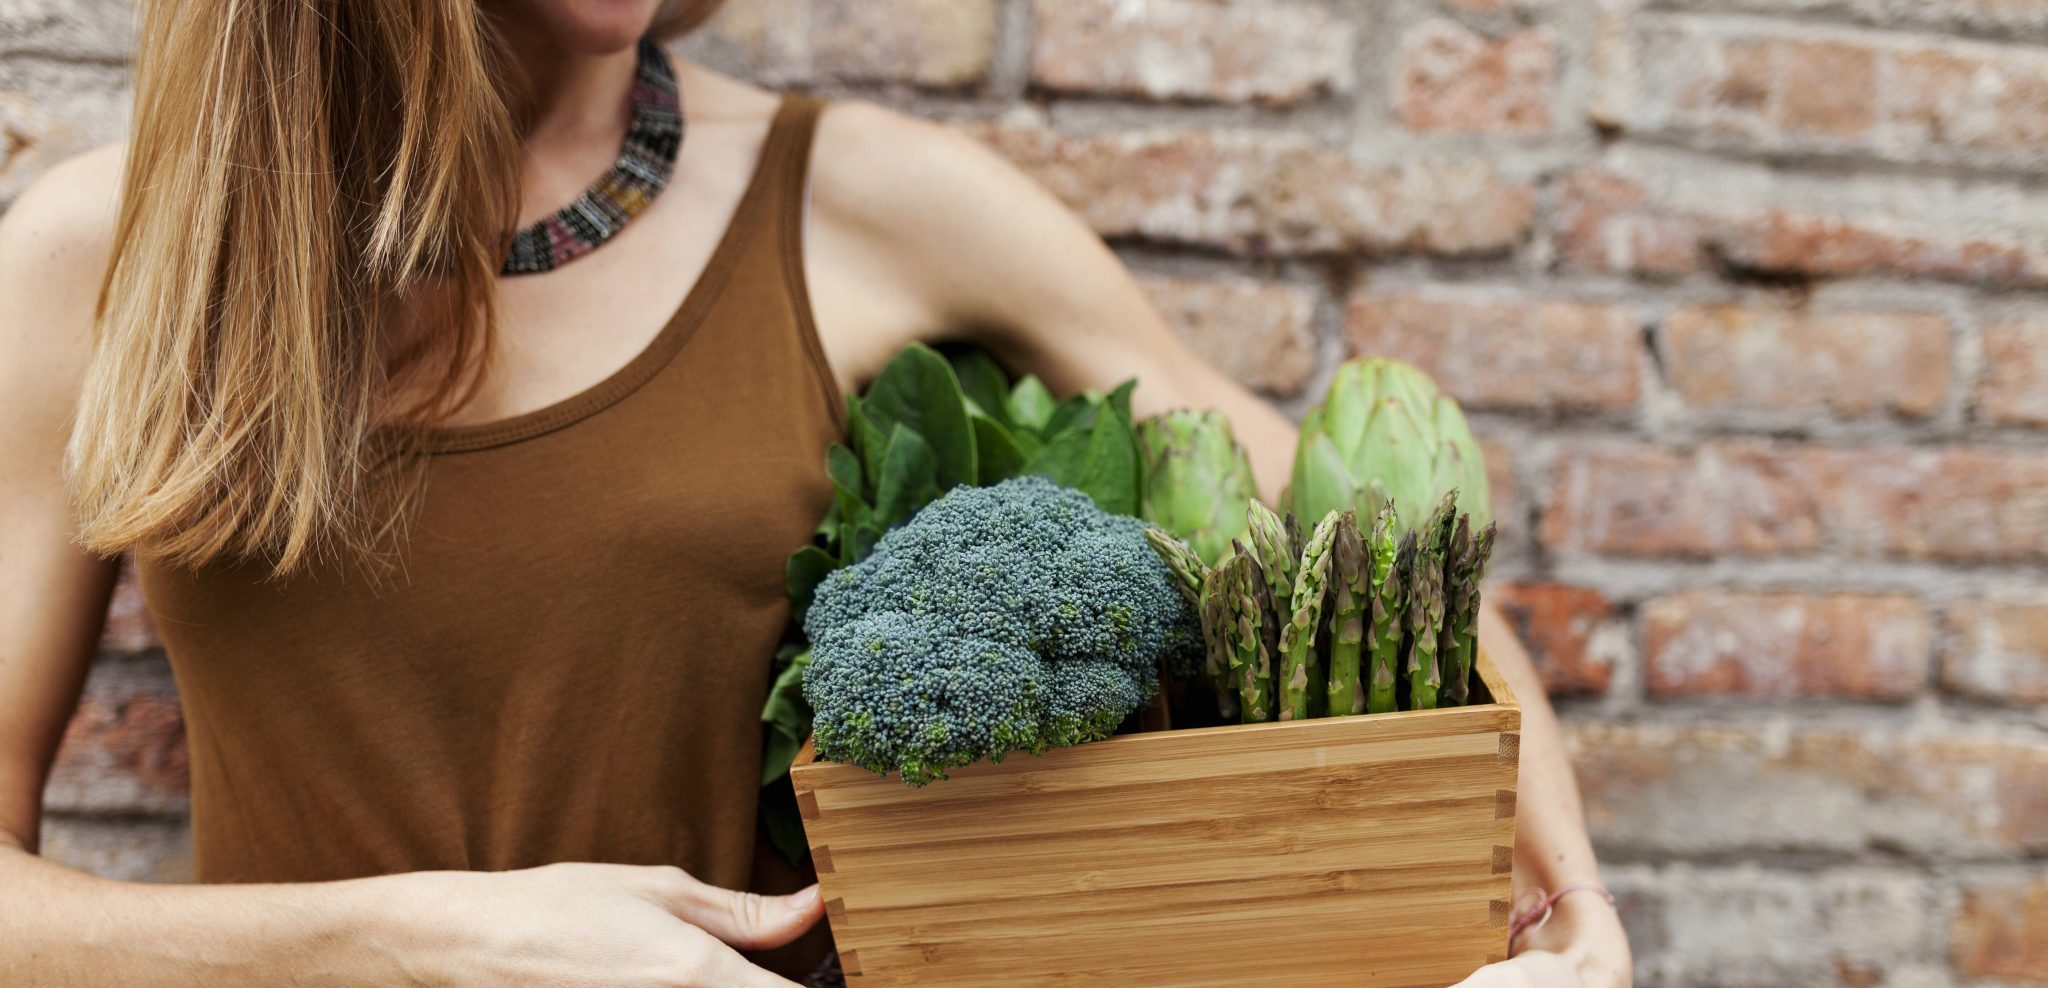 Eat Like You Care: 7 Vegetables High in Protein